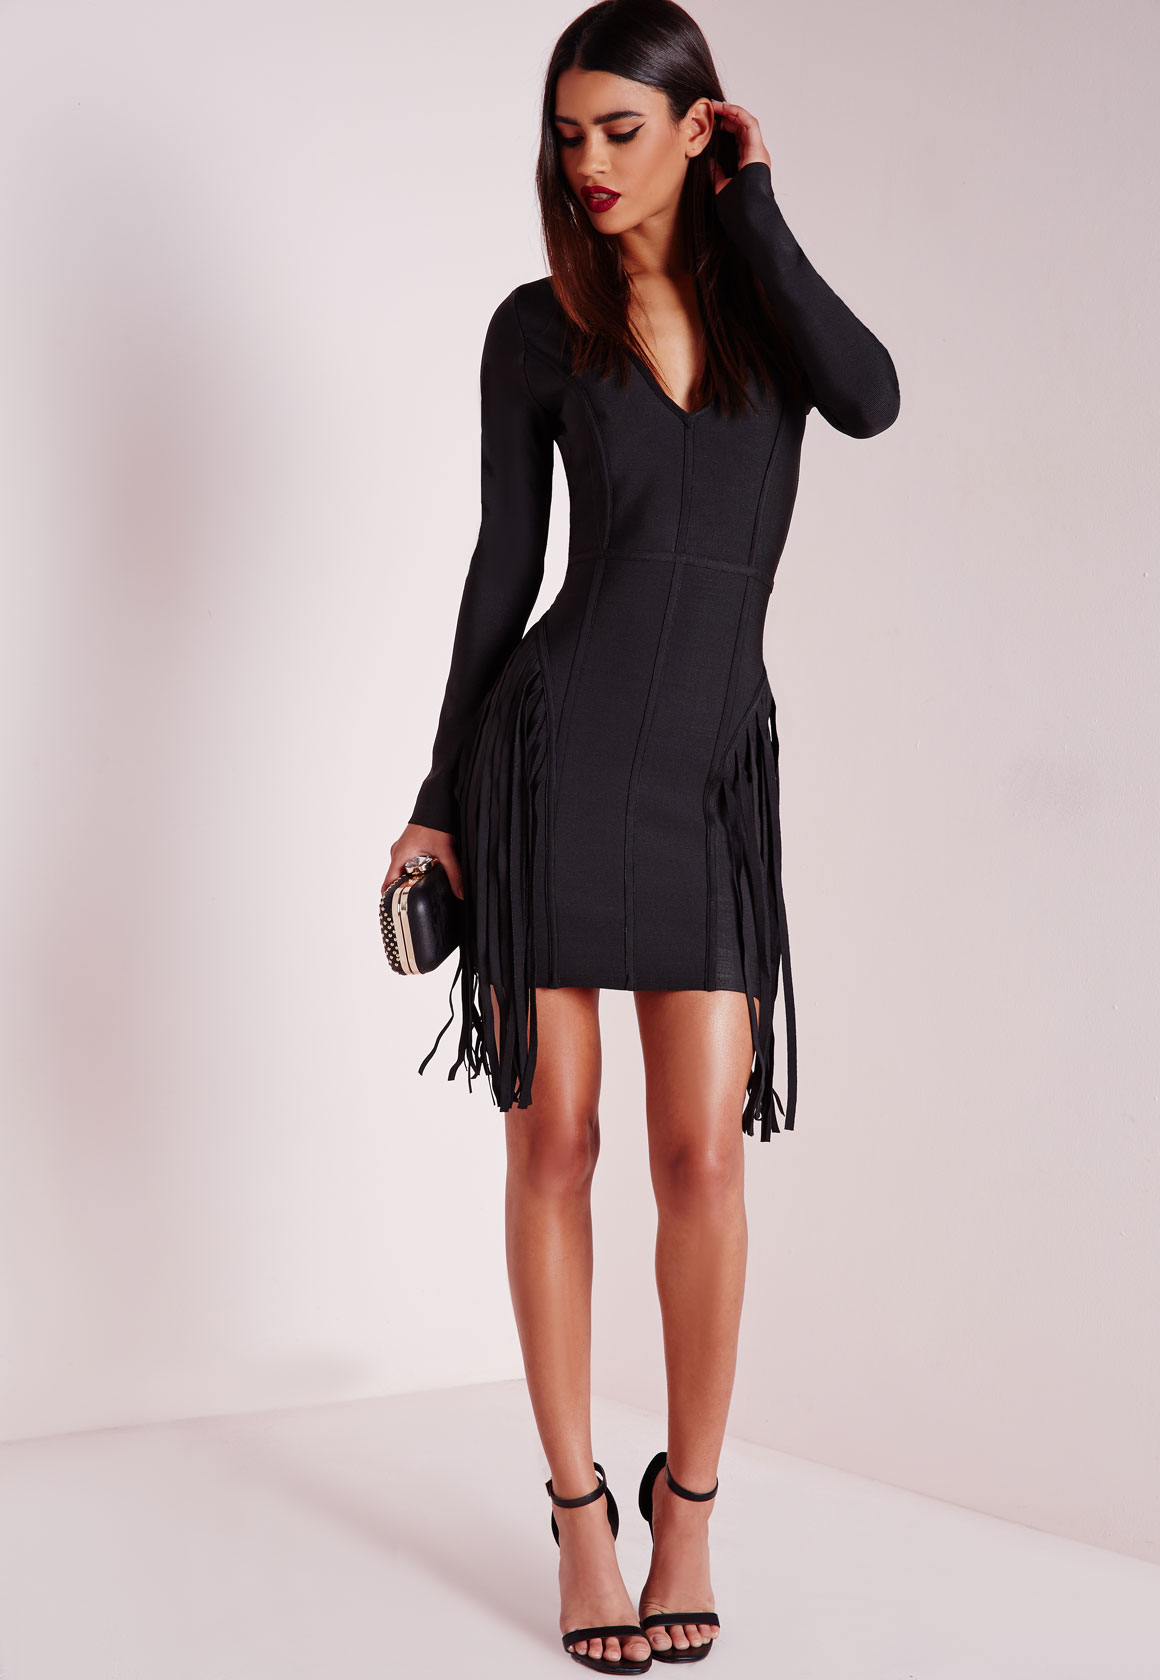 Black long sleeve bodycon dress at home